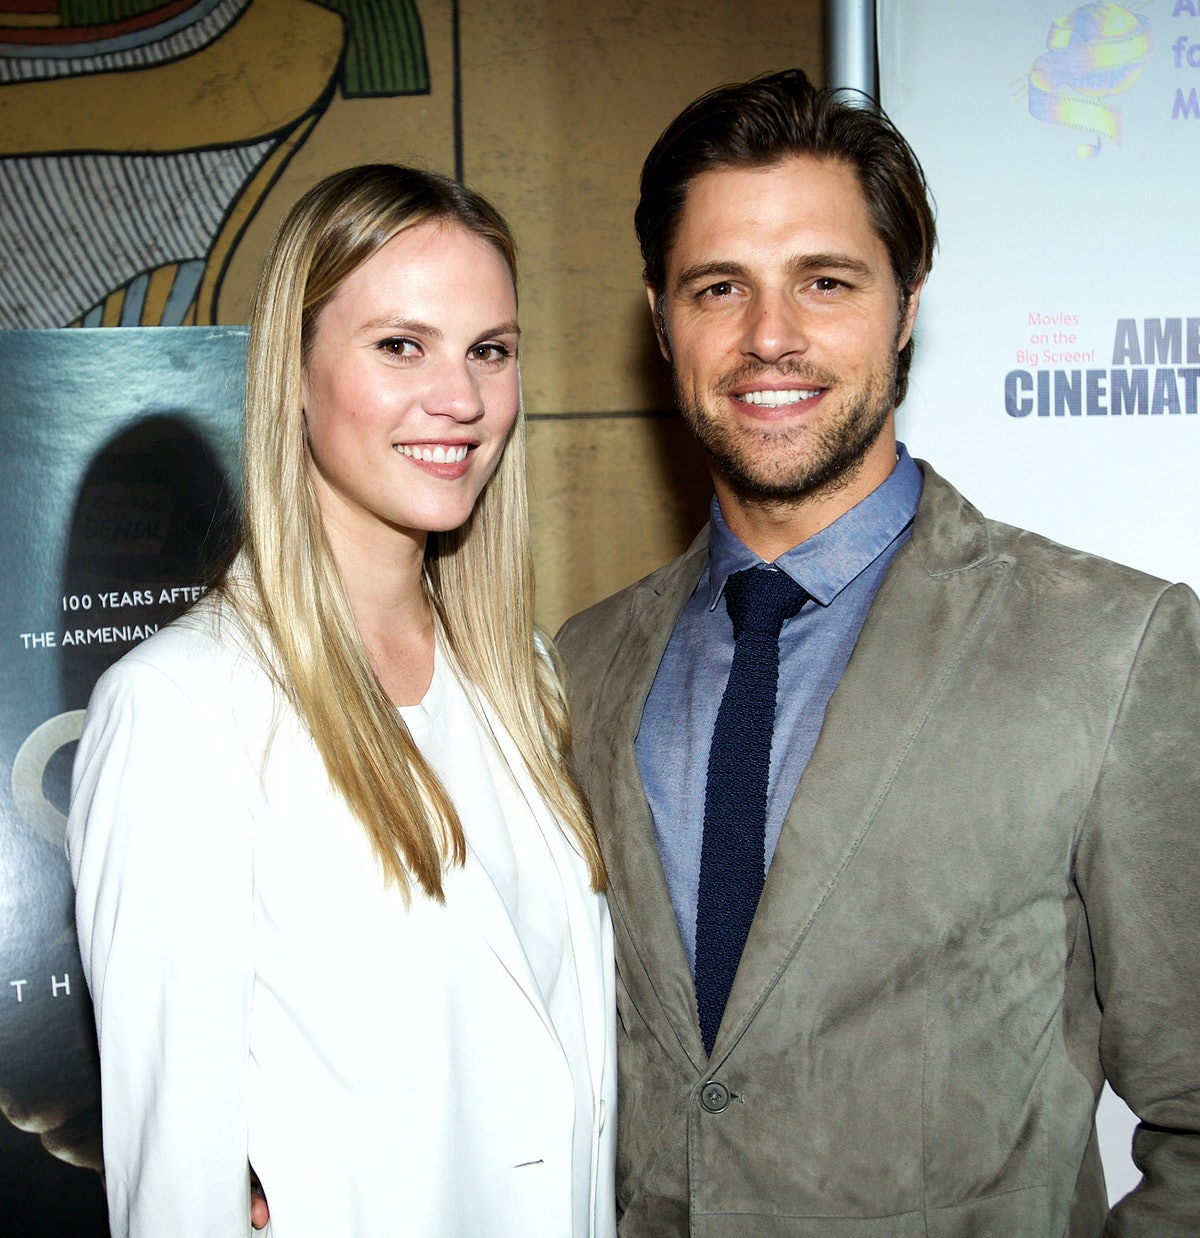 Sam Page and his wife Cassidy Boesch met at a cocktail party.